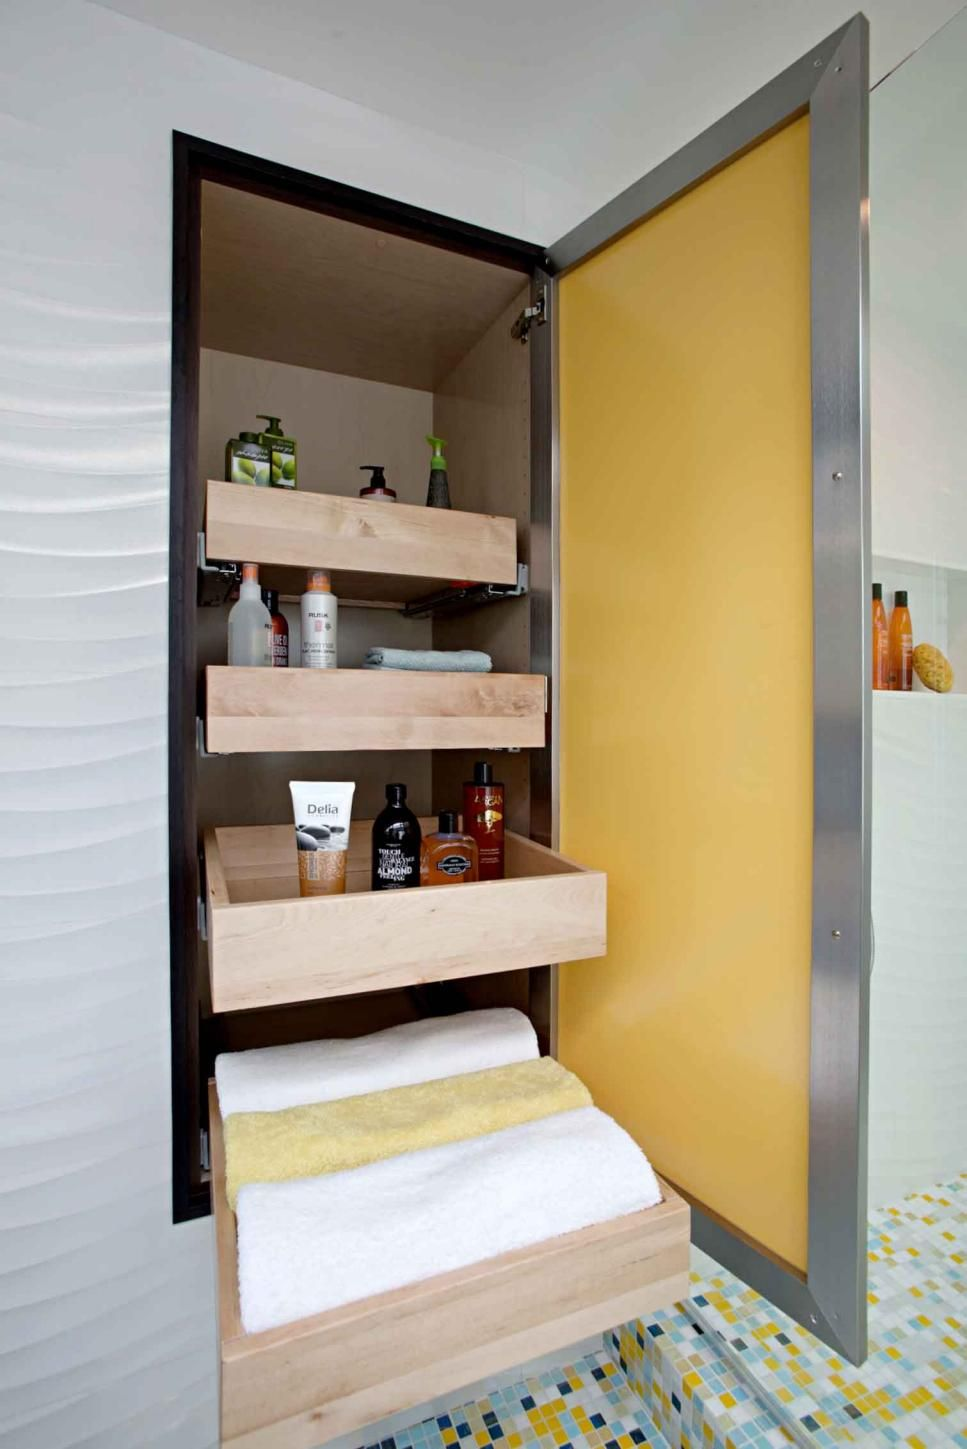 A bright yellow door conceals a large cabinet space built into the